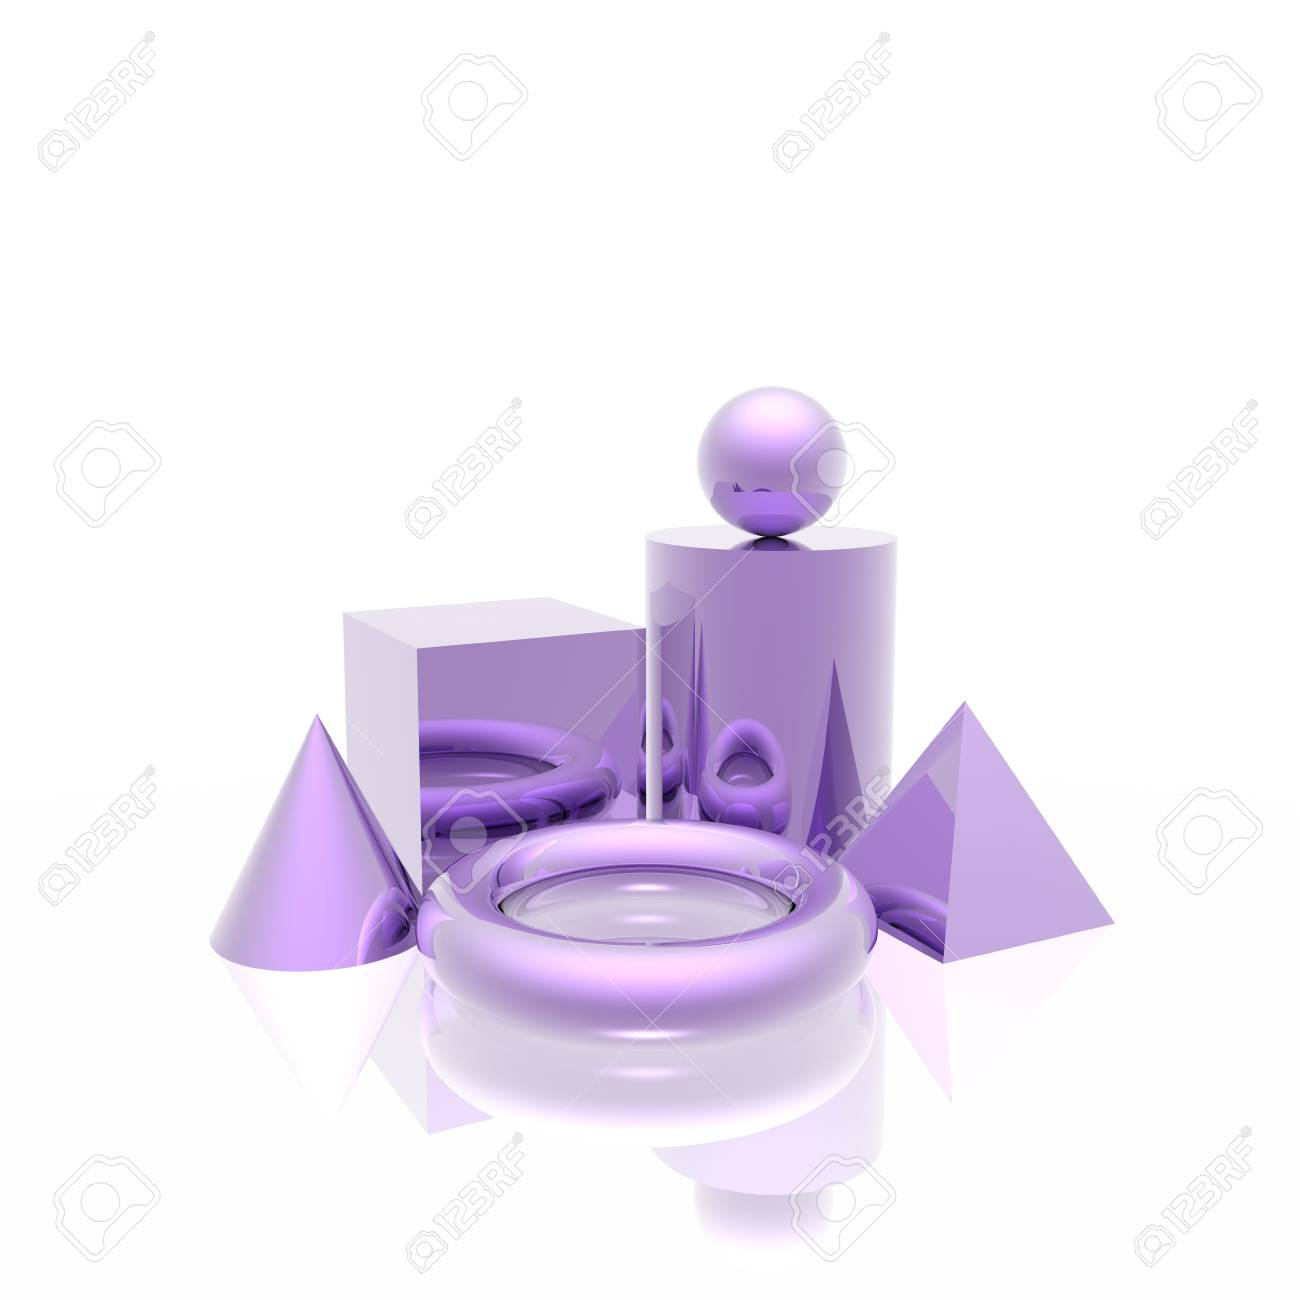 simple shapes Stock Photo - 4179956